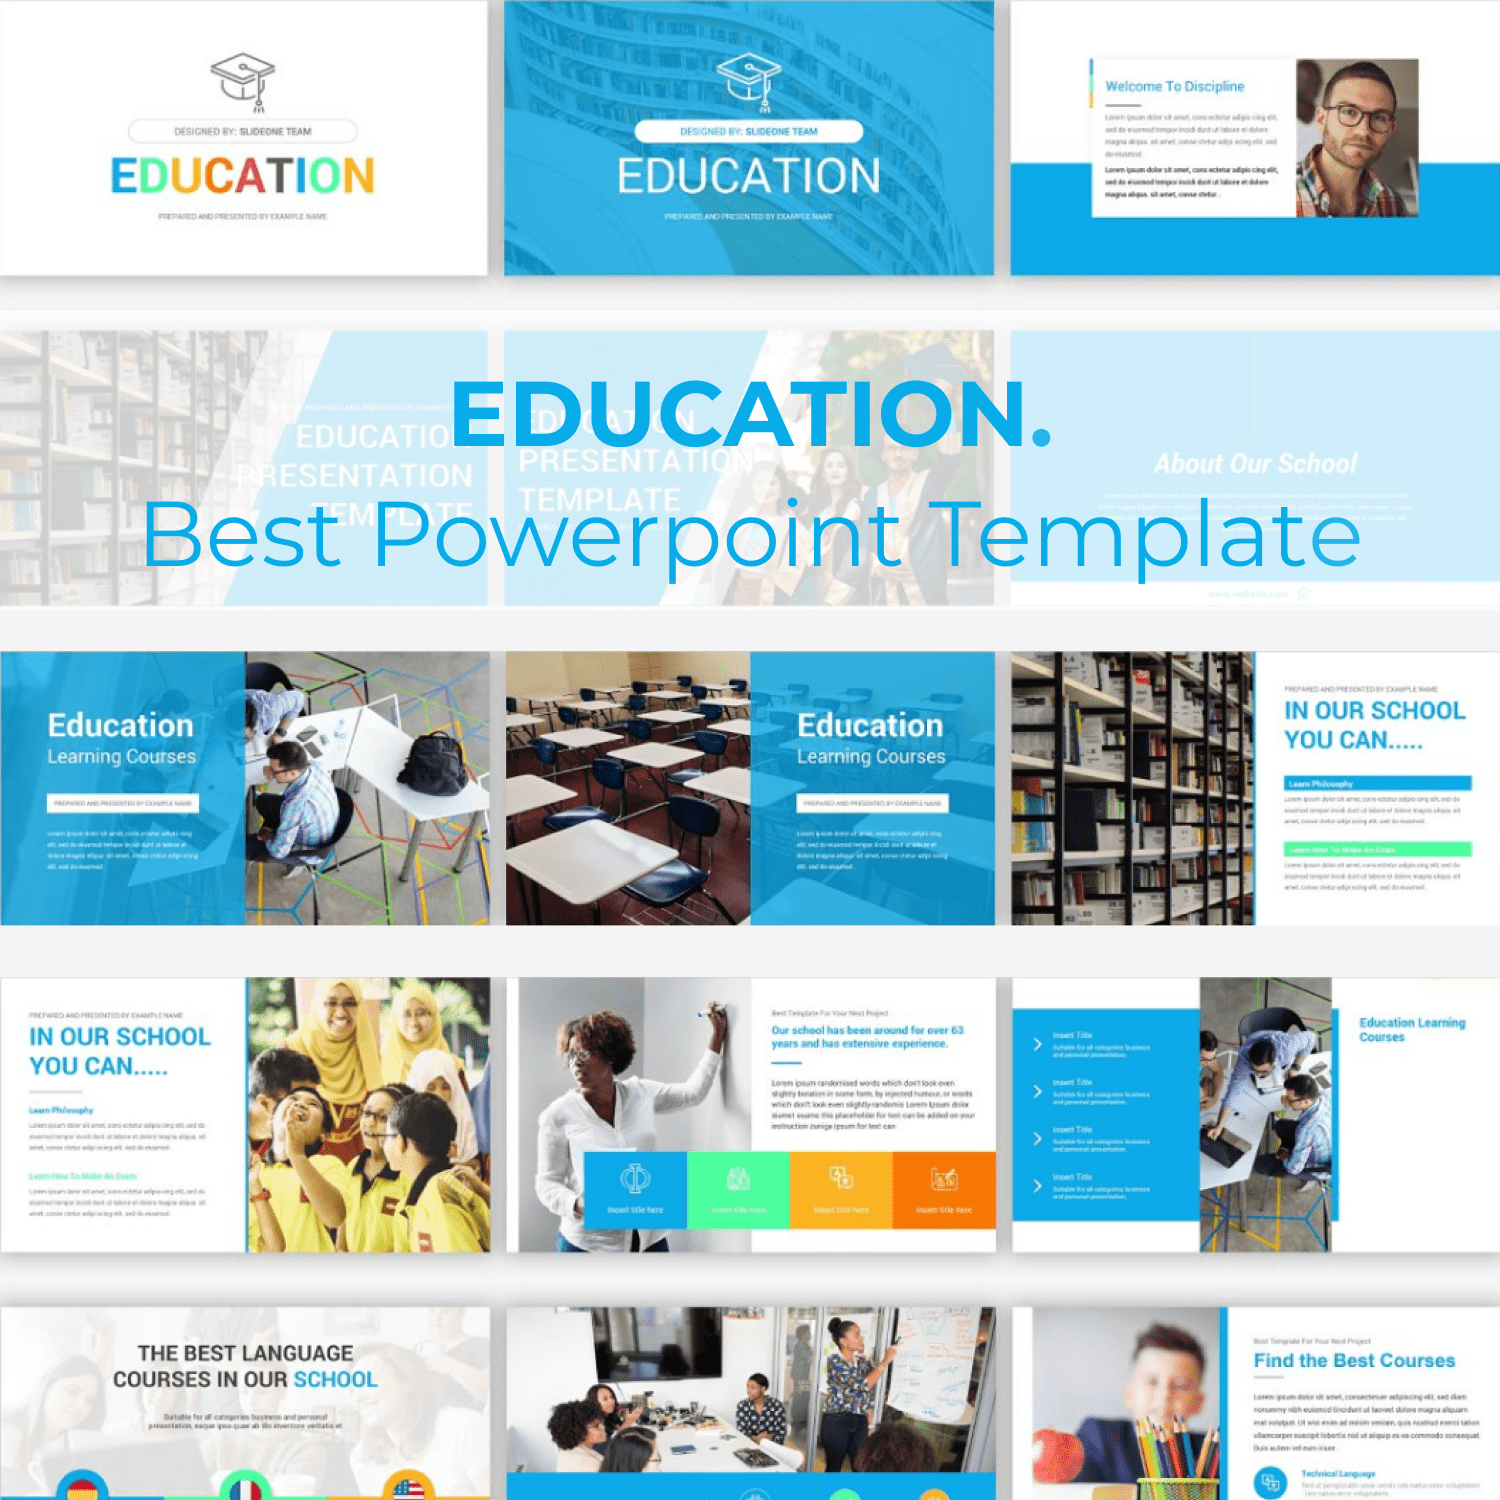 Education PowerPoint Template cover image.